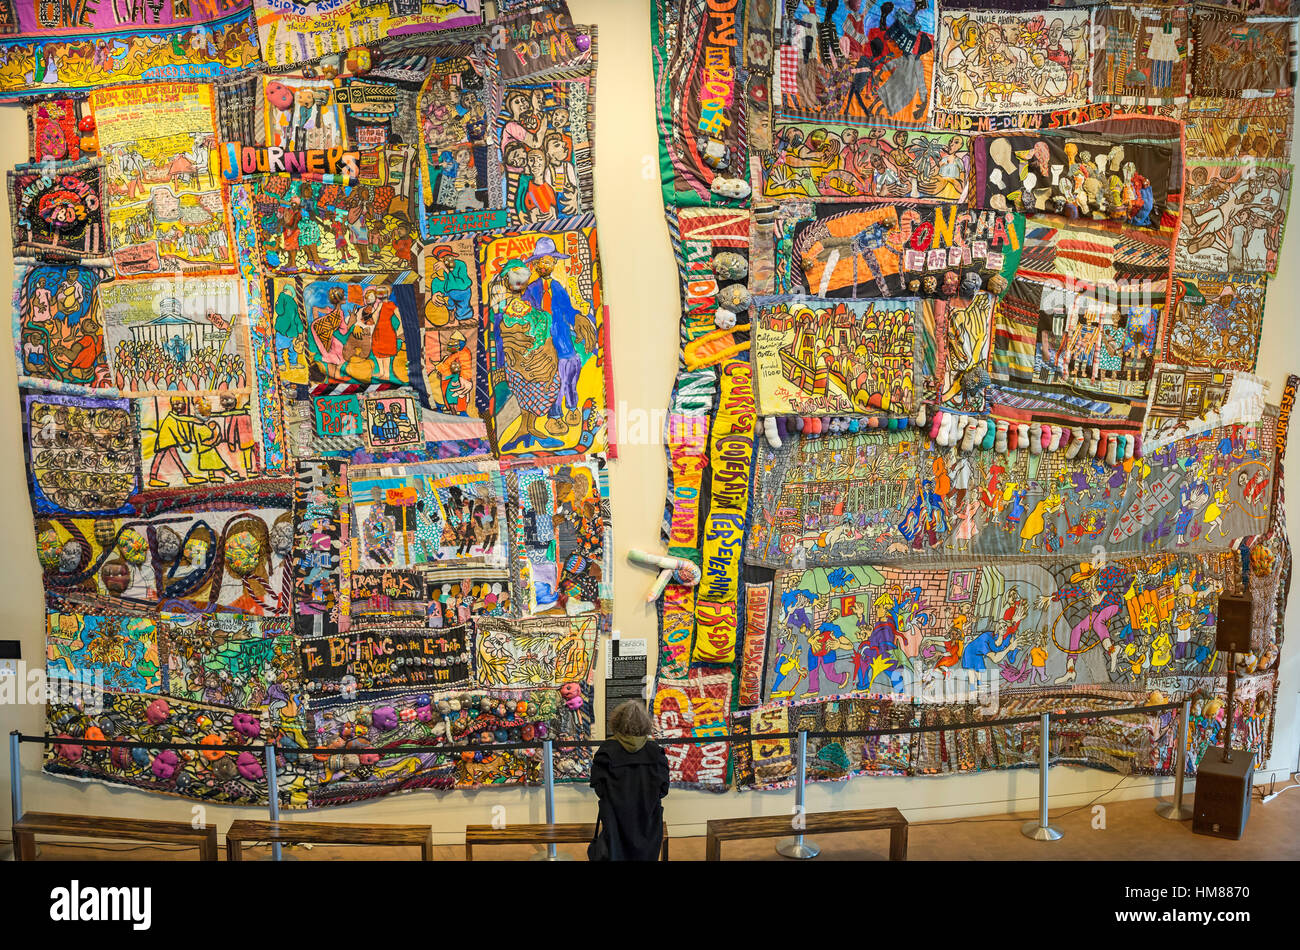 Cincinnati, Ohio - Art Textile Voyages, I et II, par Amina Brenda Lynn Robinson au National Underground Railroad Photo Stock